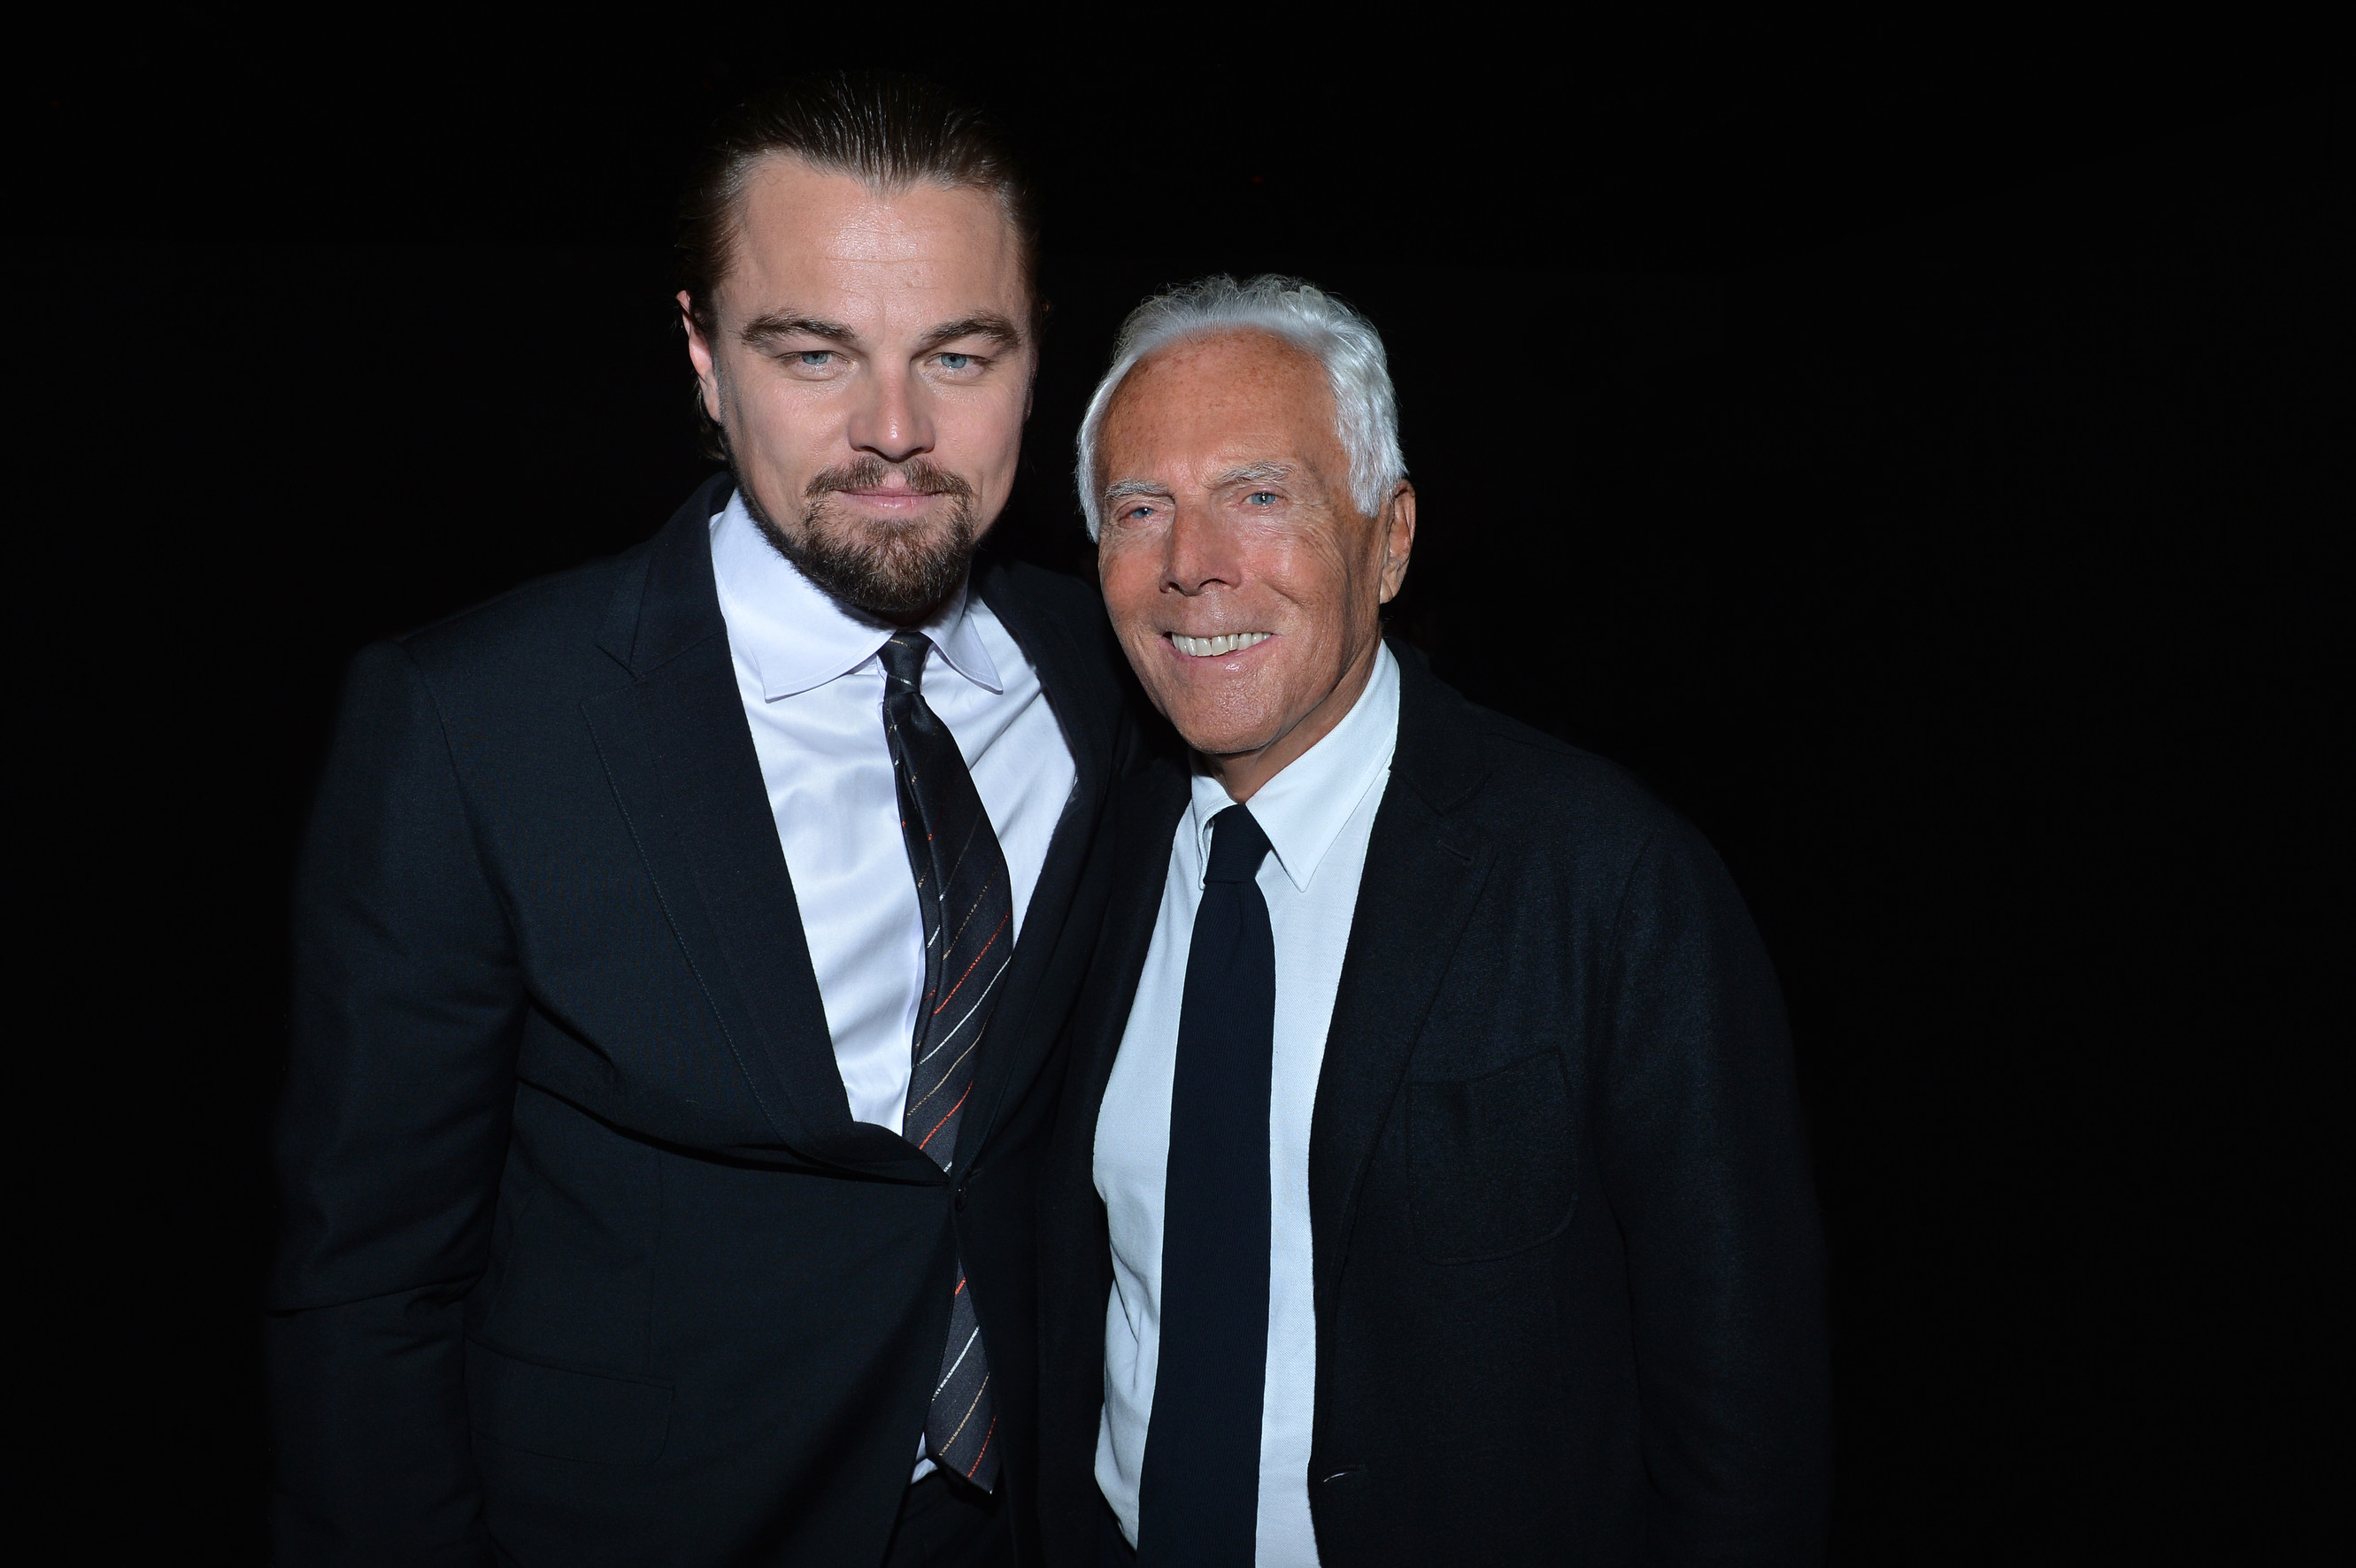 Stars Come Out for Giorgio Armani's One Night Only